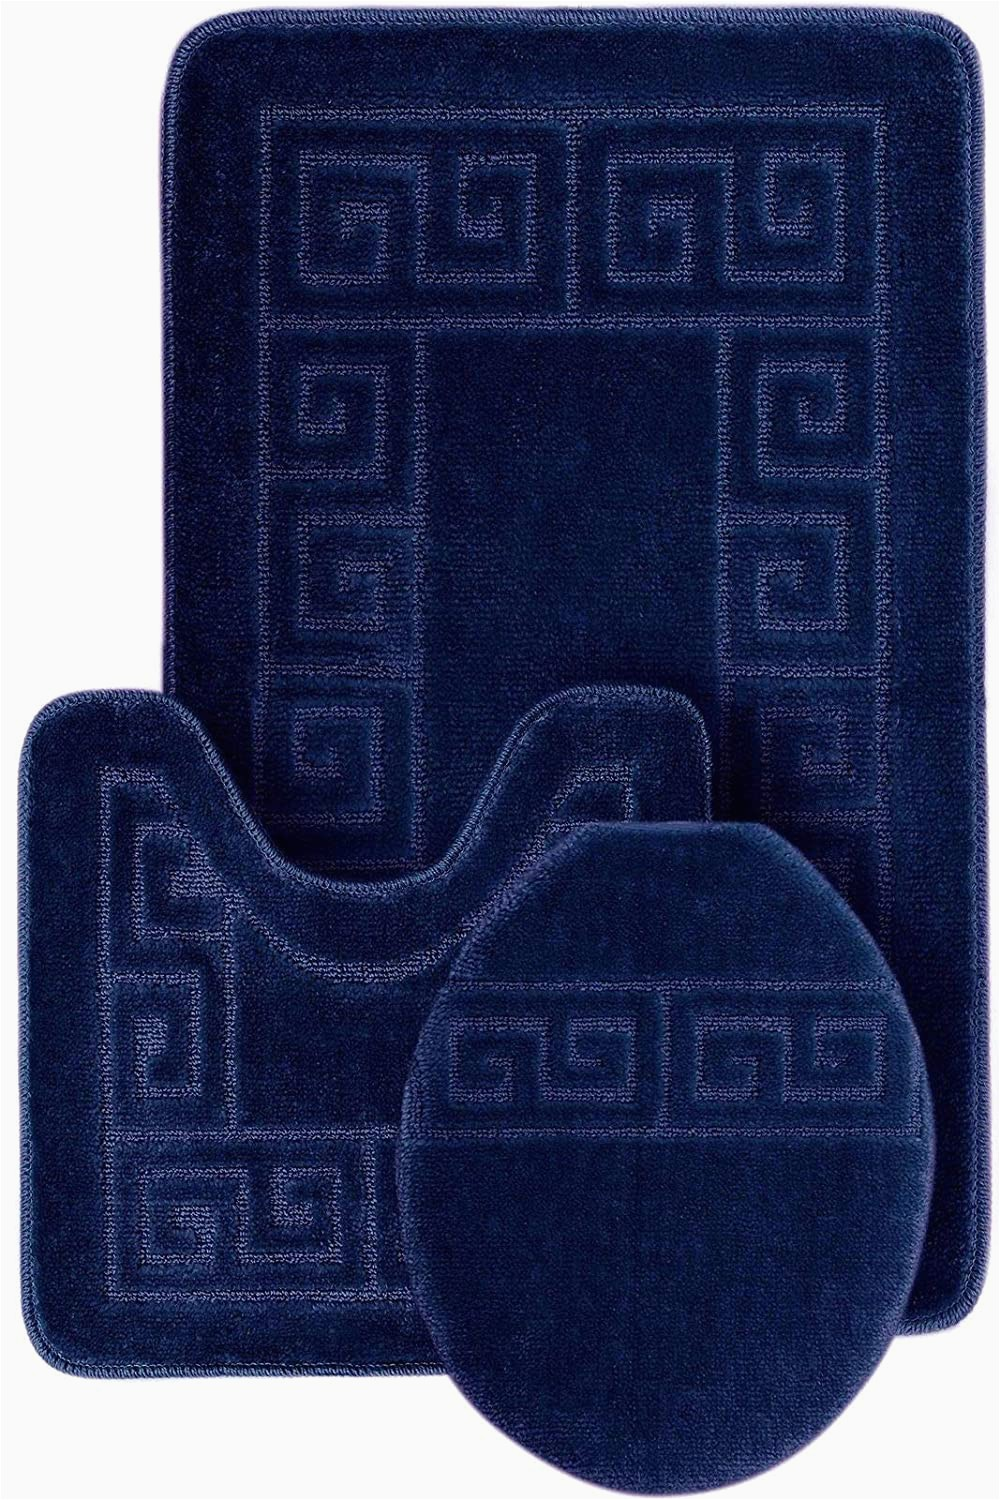 "Best Contour Bath Rugs Buy 3 Piece Bath Rug Set Pattern Bathroom Rug 20""x32"